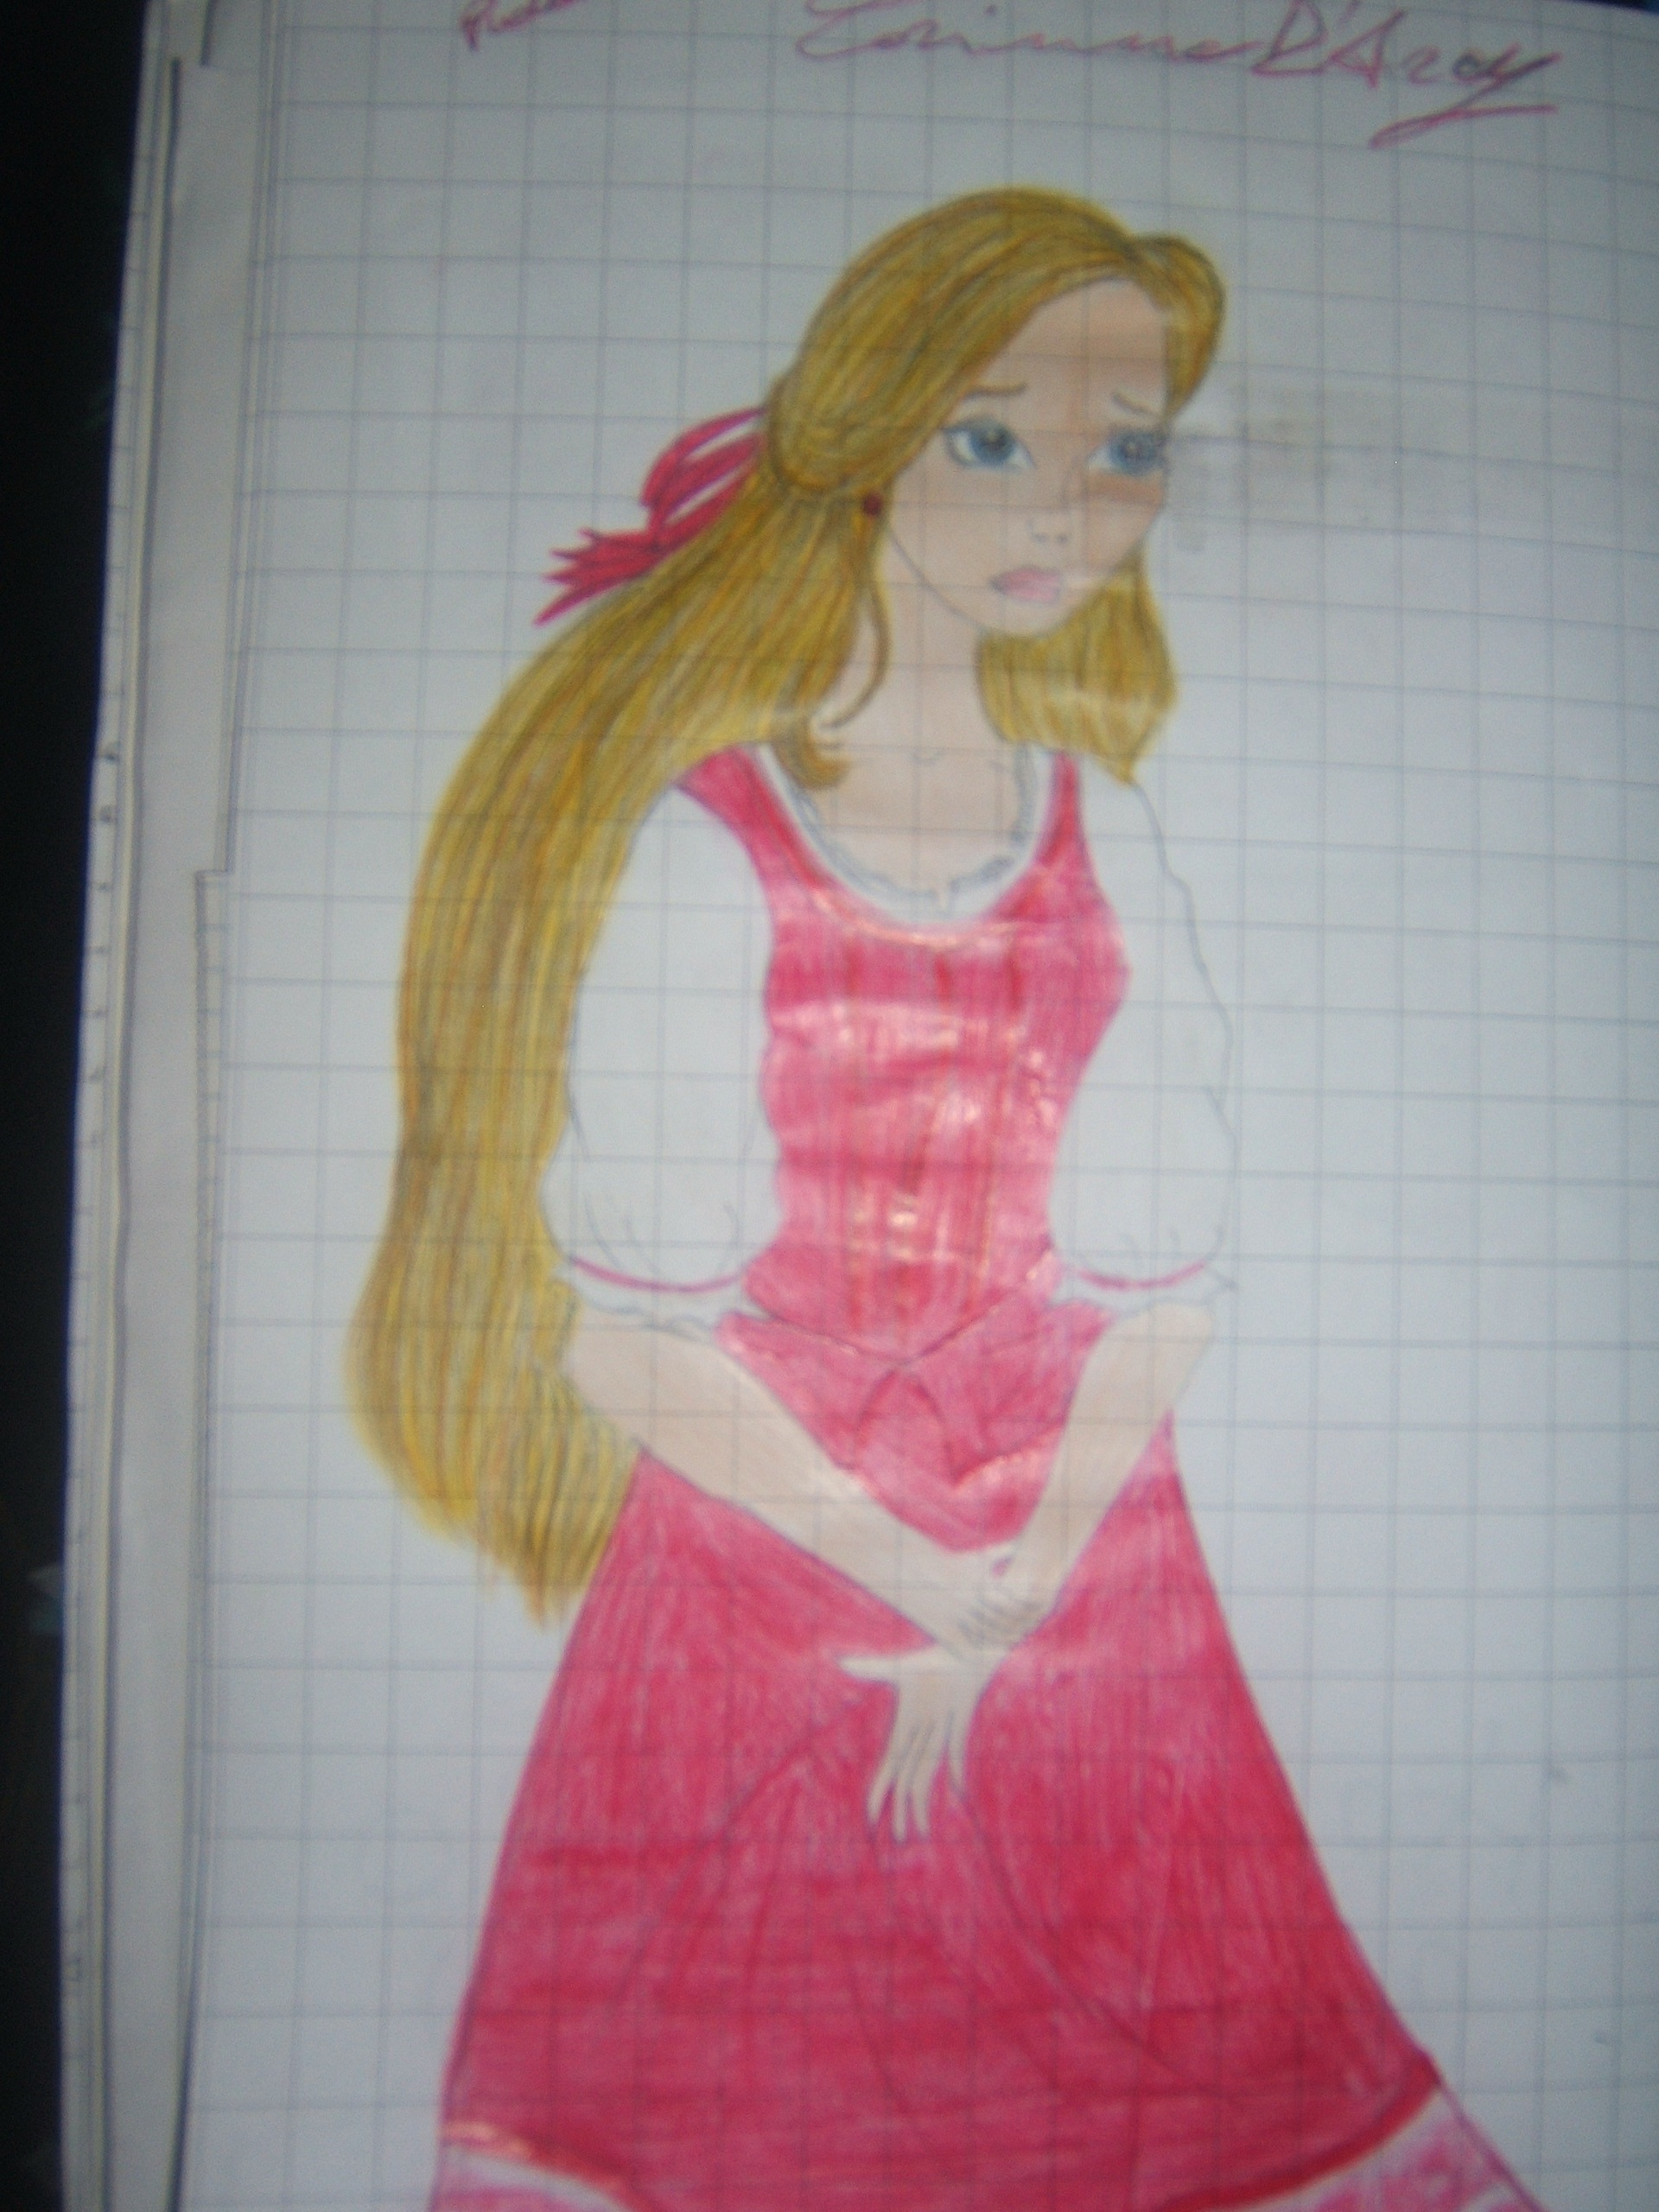 Corinne draw by me!